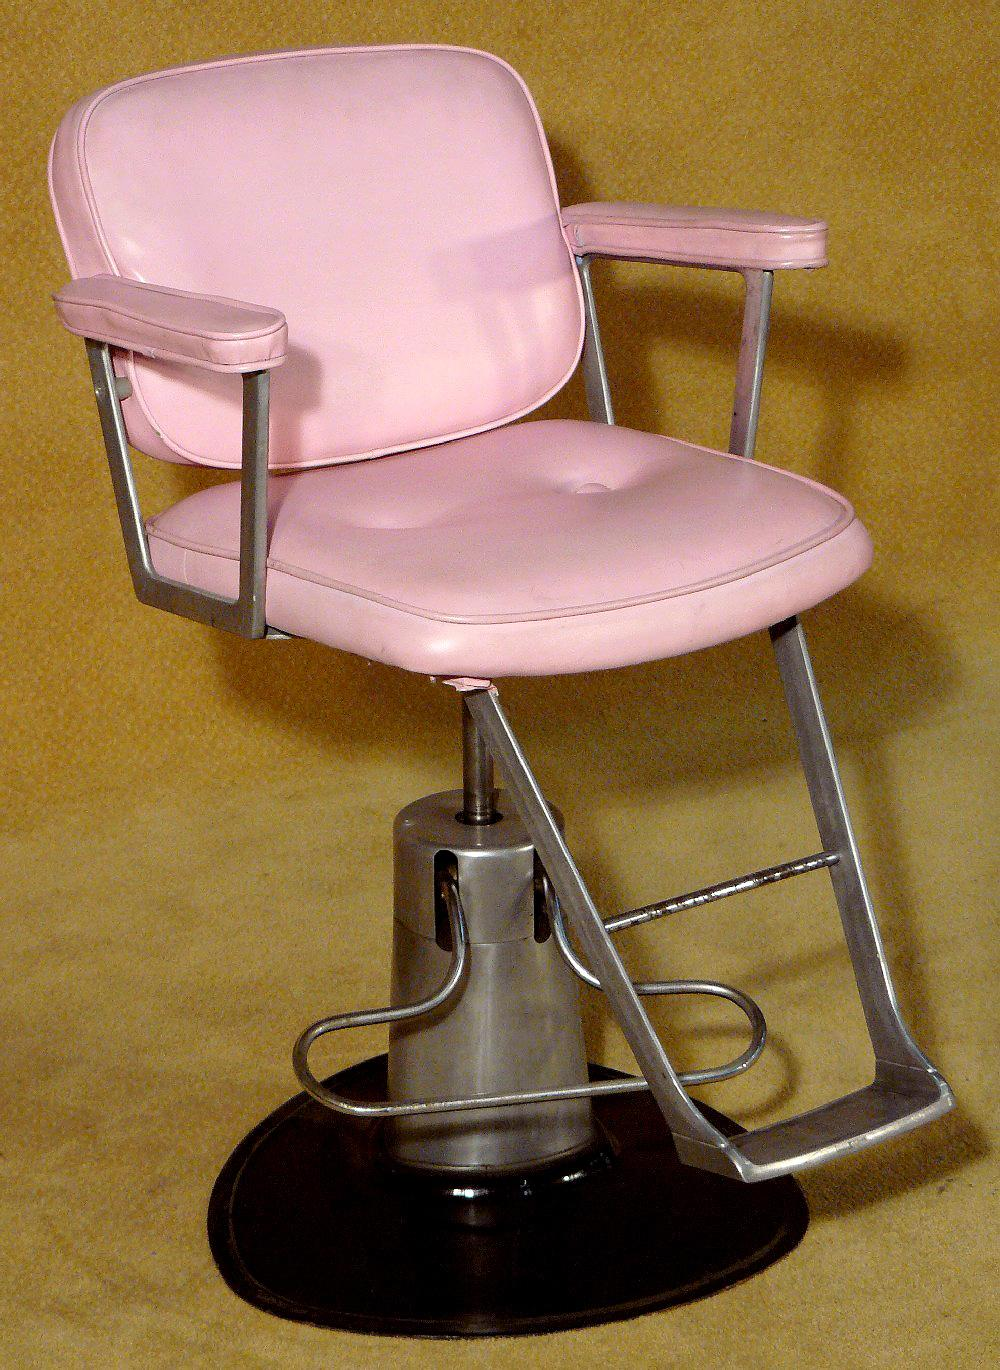 Image 1 : Vintage Beauty Salon Chair Pink X2 - Vintage Beauty Salon Chair Pink X2